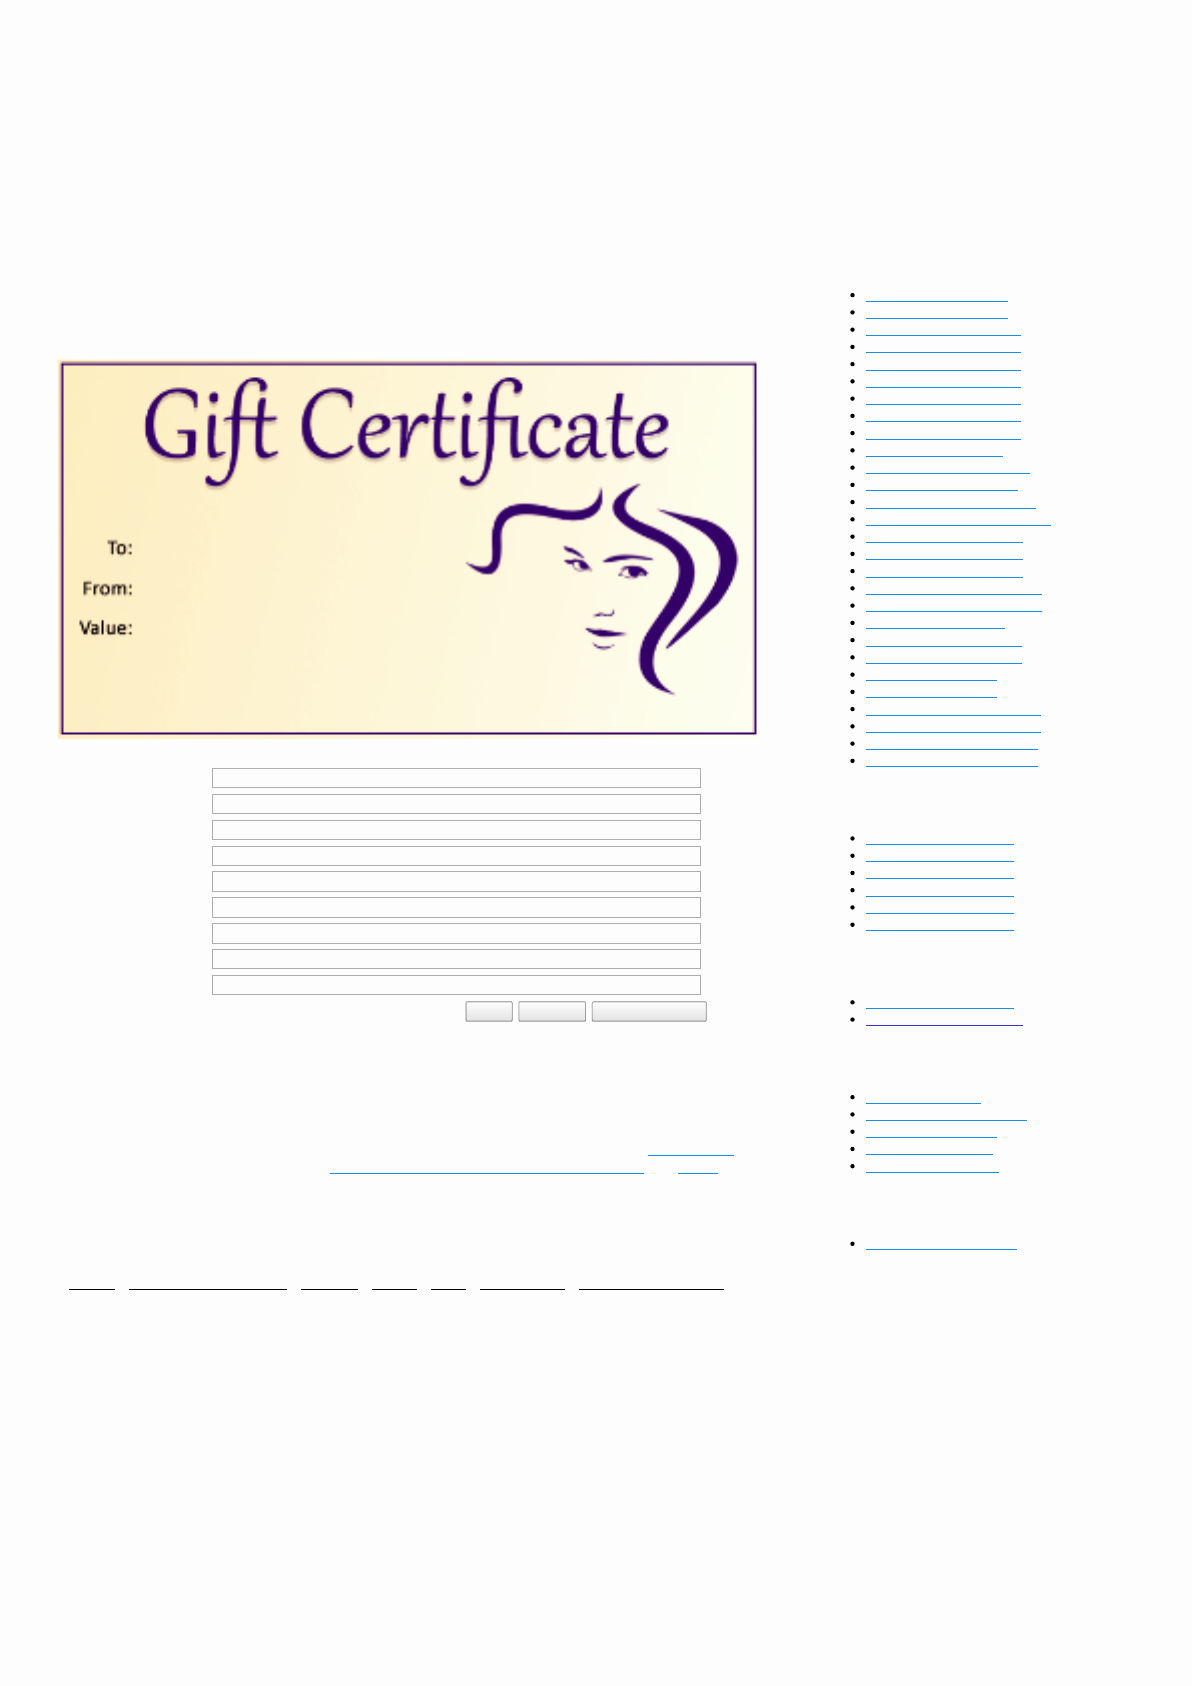 Salon Gift Certificate Templates Lovely Download Salon Gift Certificate Template for Free Tidytemplates